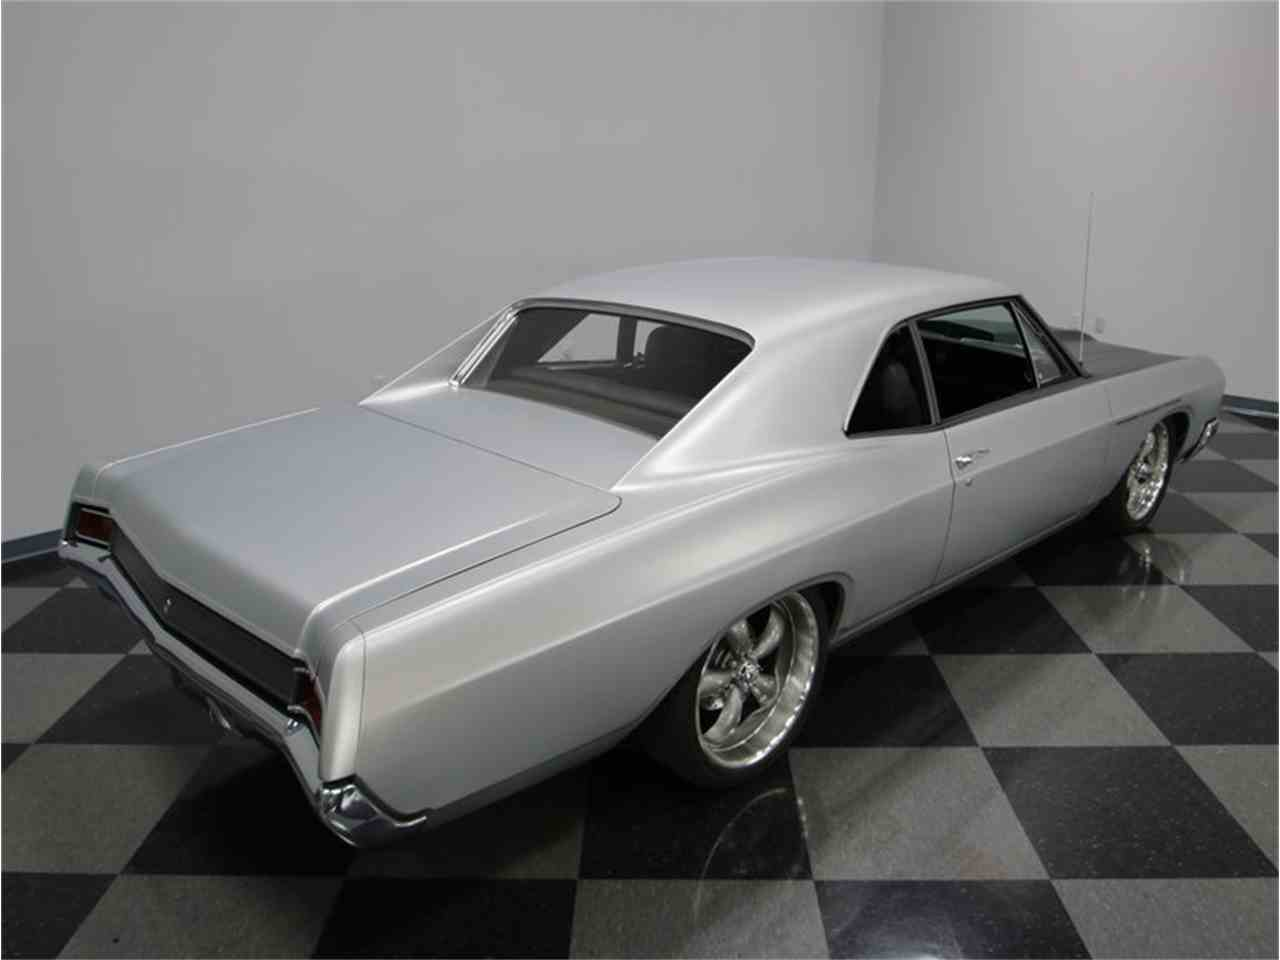 Large Picture of 1966 Buick Skylark Pro Touring located in Georgia - $36,995.00 Offered by Streetside Classics - Atlanta - L93D